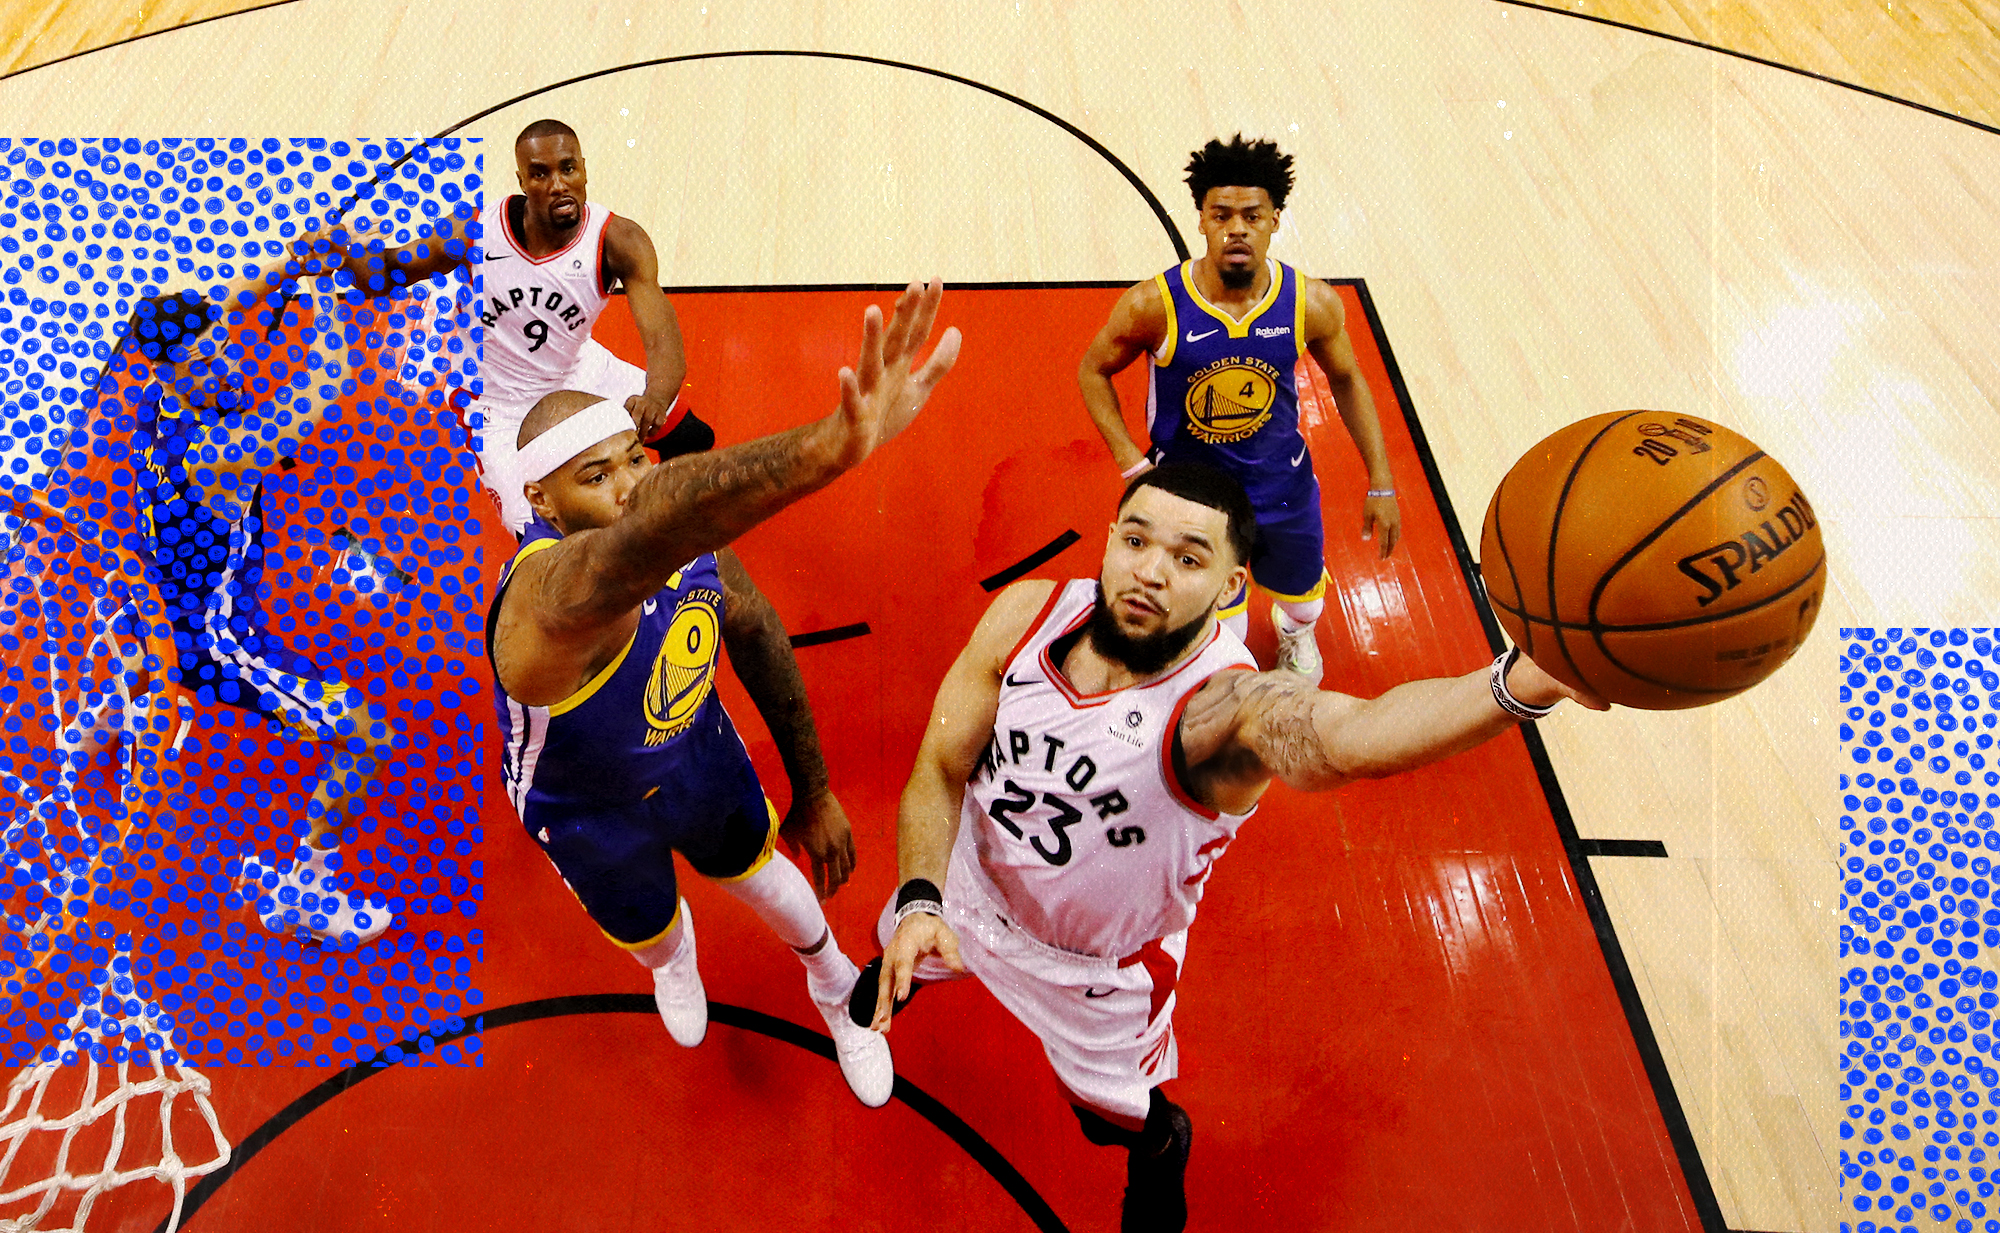 Fred VanVleet is the shot clock king